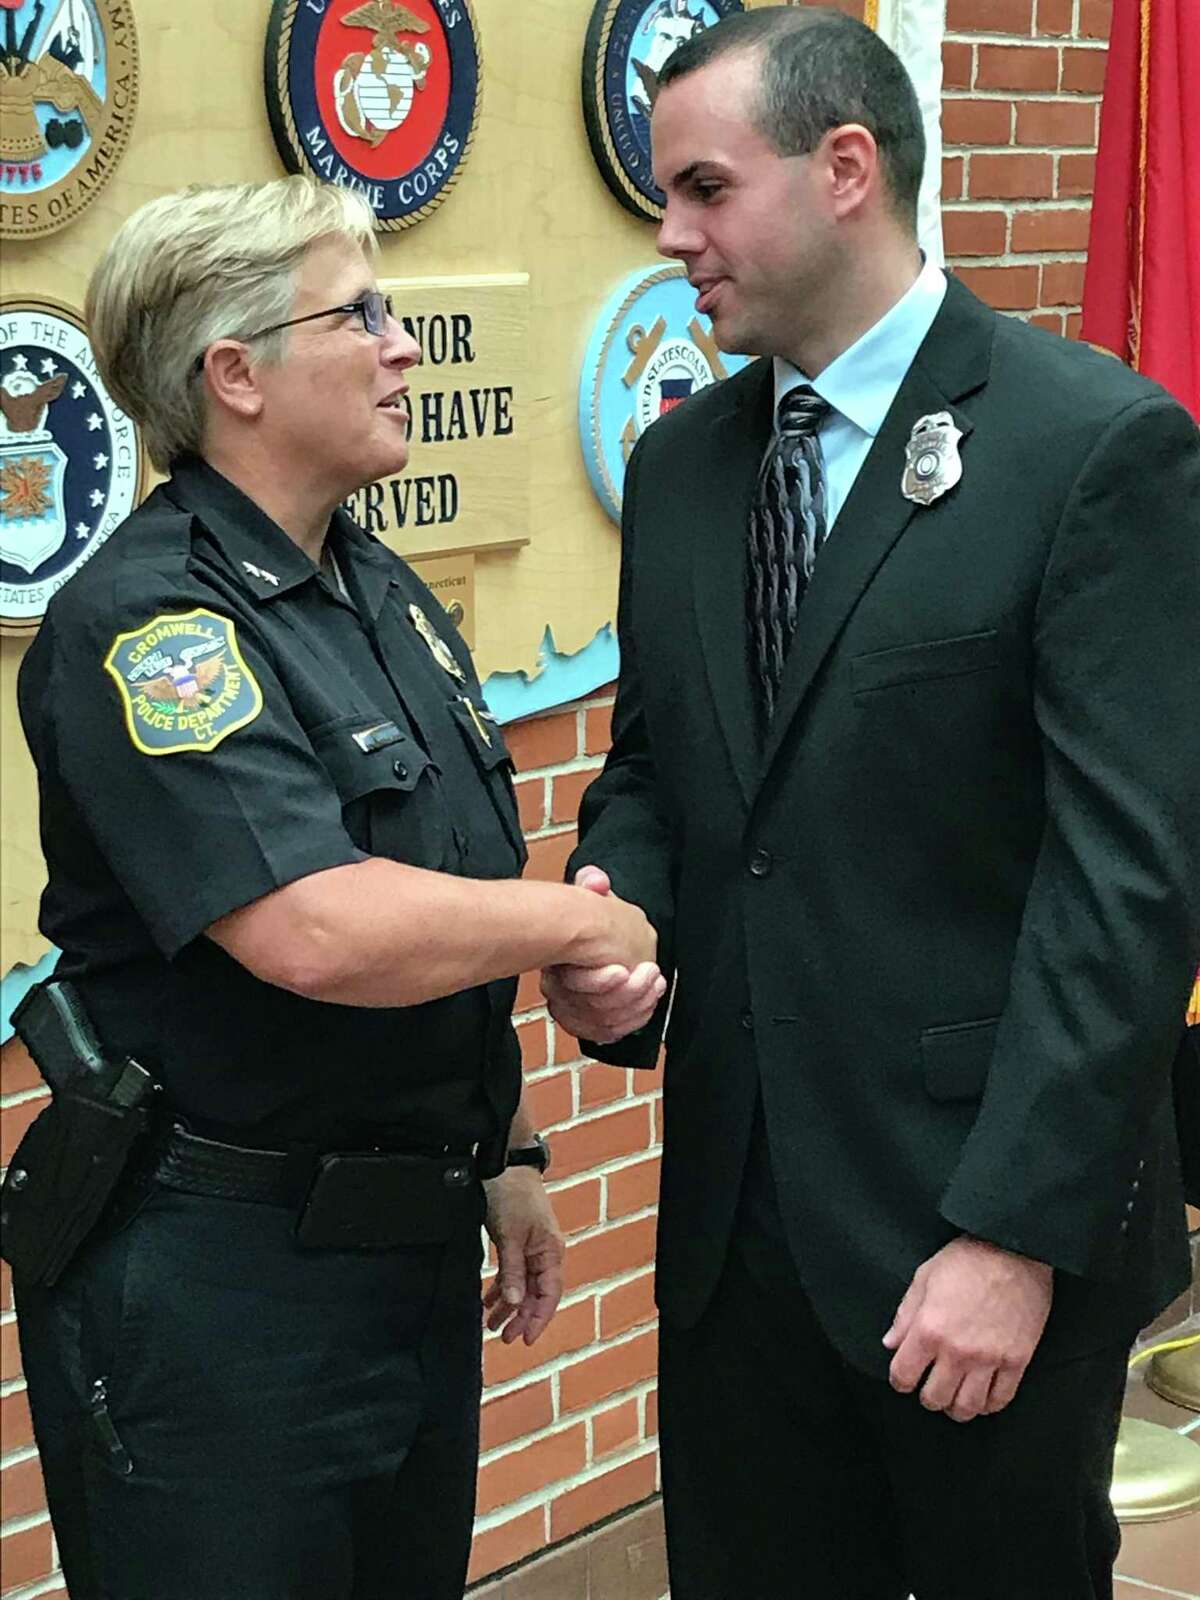 Police Chief Denise Lamontagne and Officer Coltin Jespersen